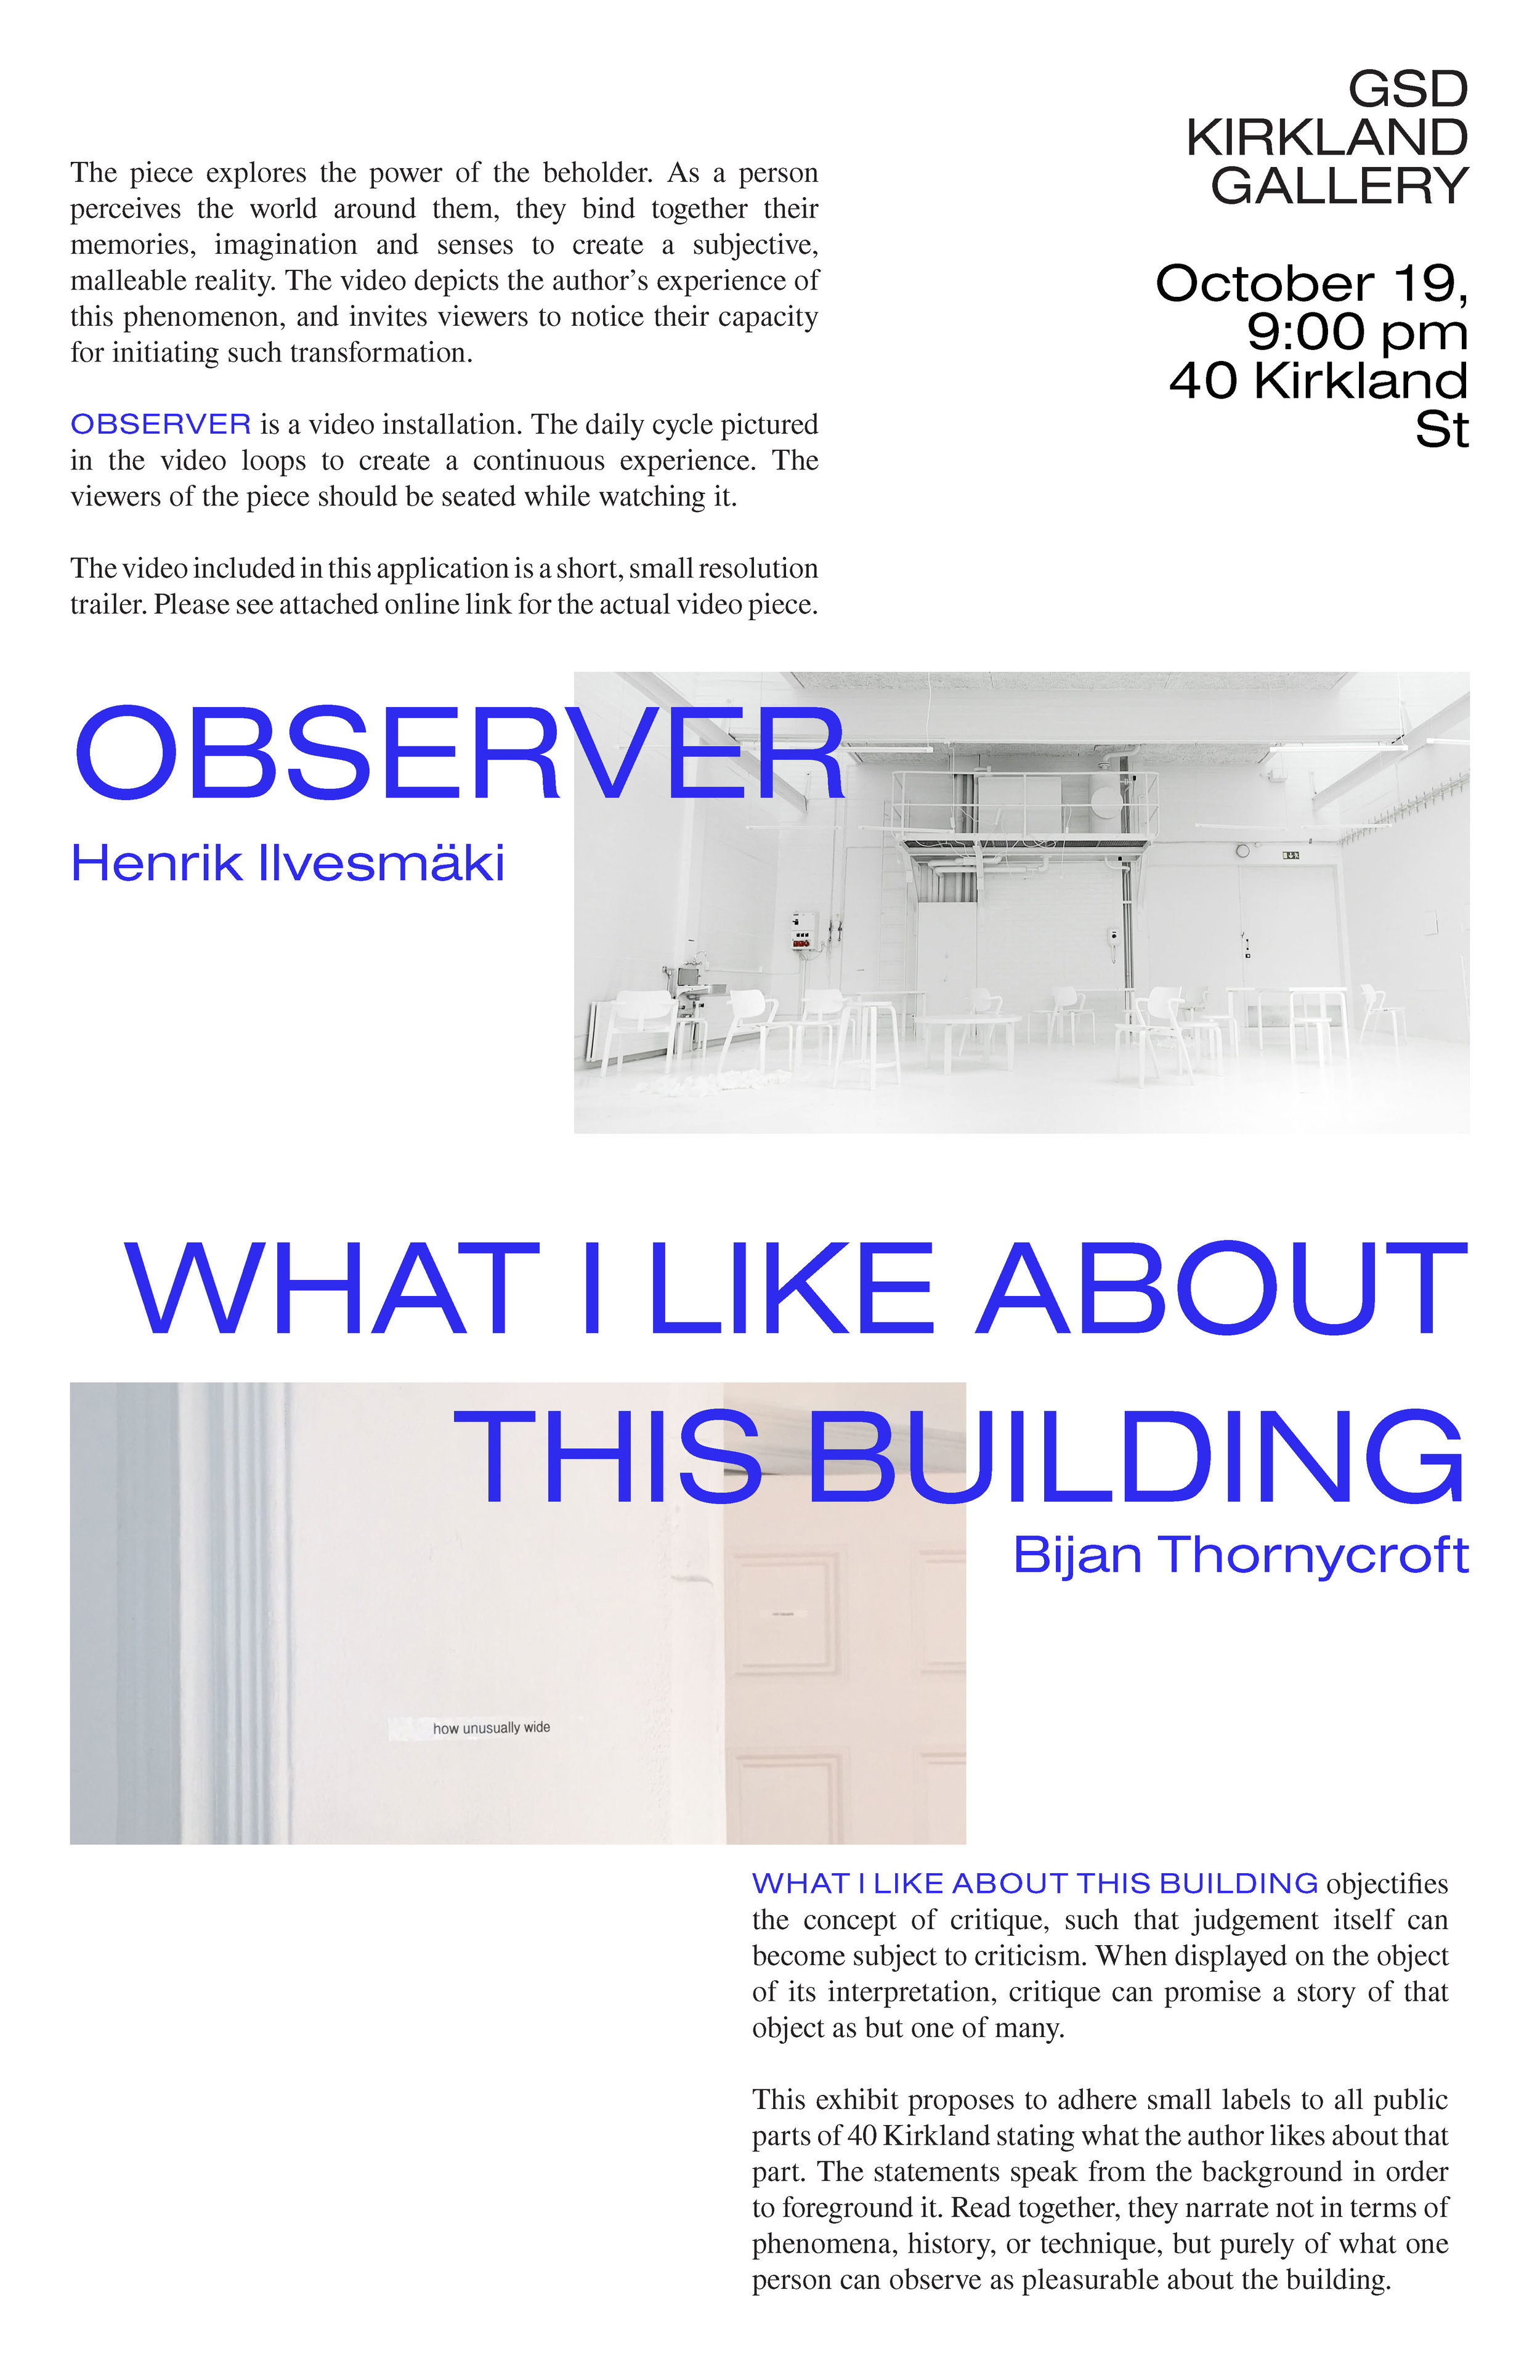 Observer - what i like about this building.jpg